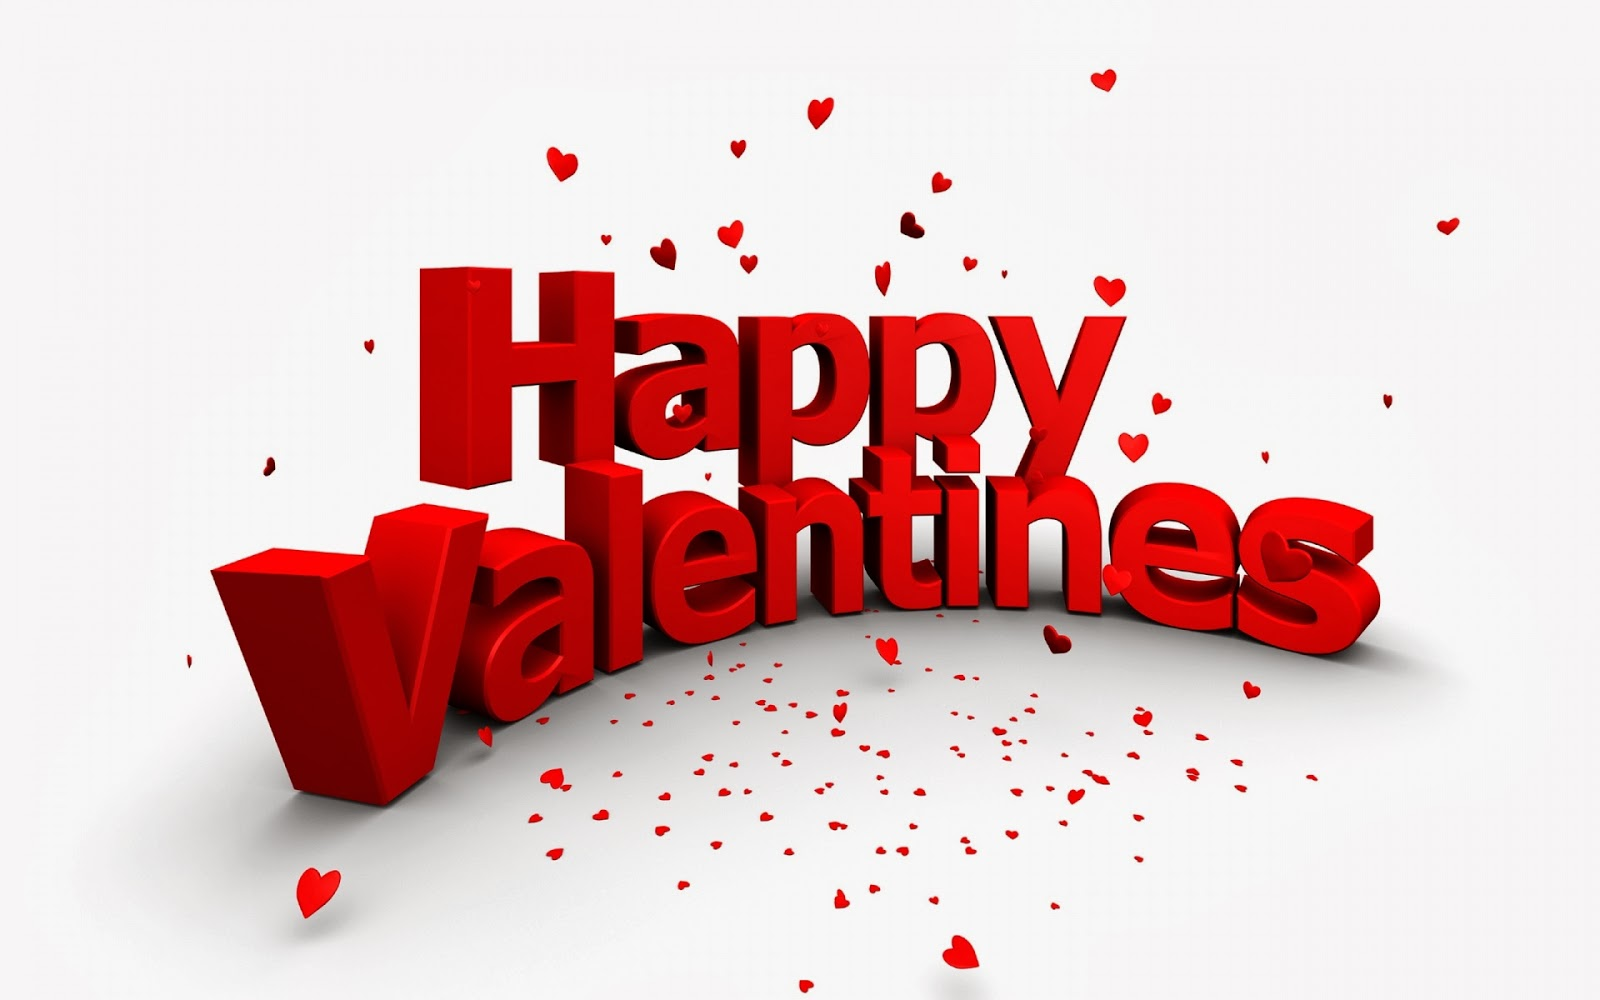 Happy-Valentines-Red-3d-text-white-BG-HD-Desktop-wallpaper.jpg